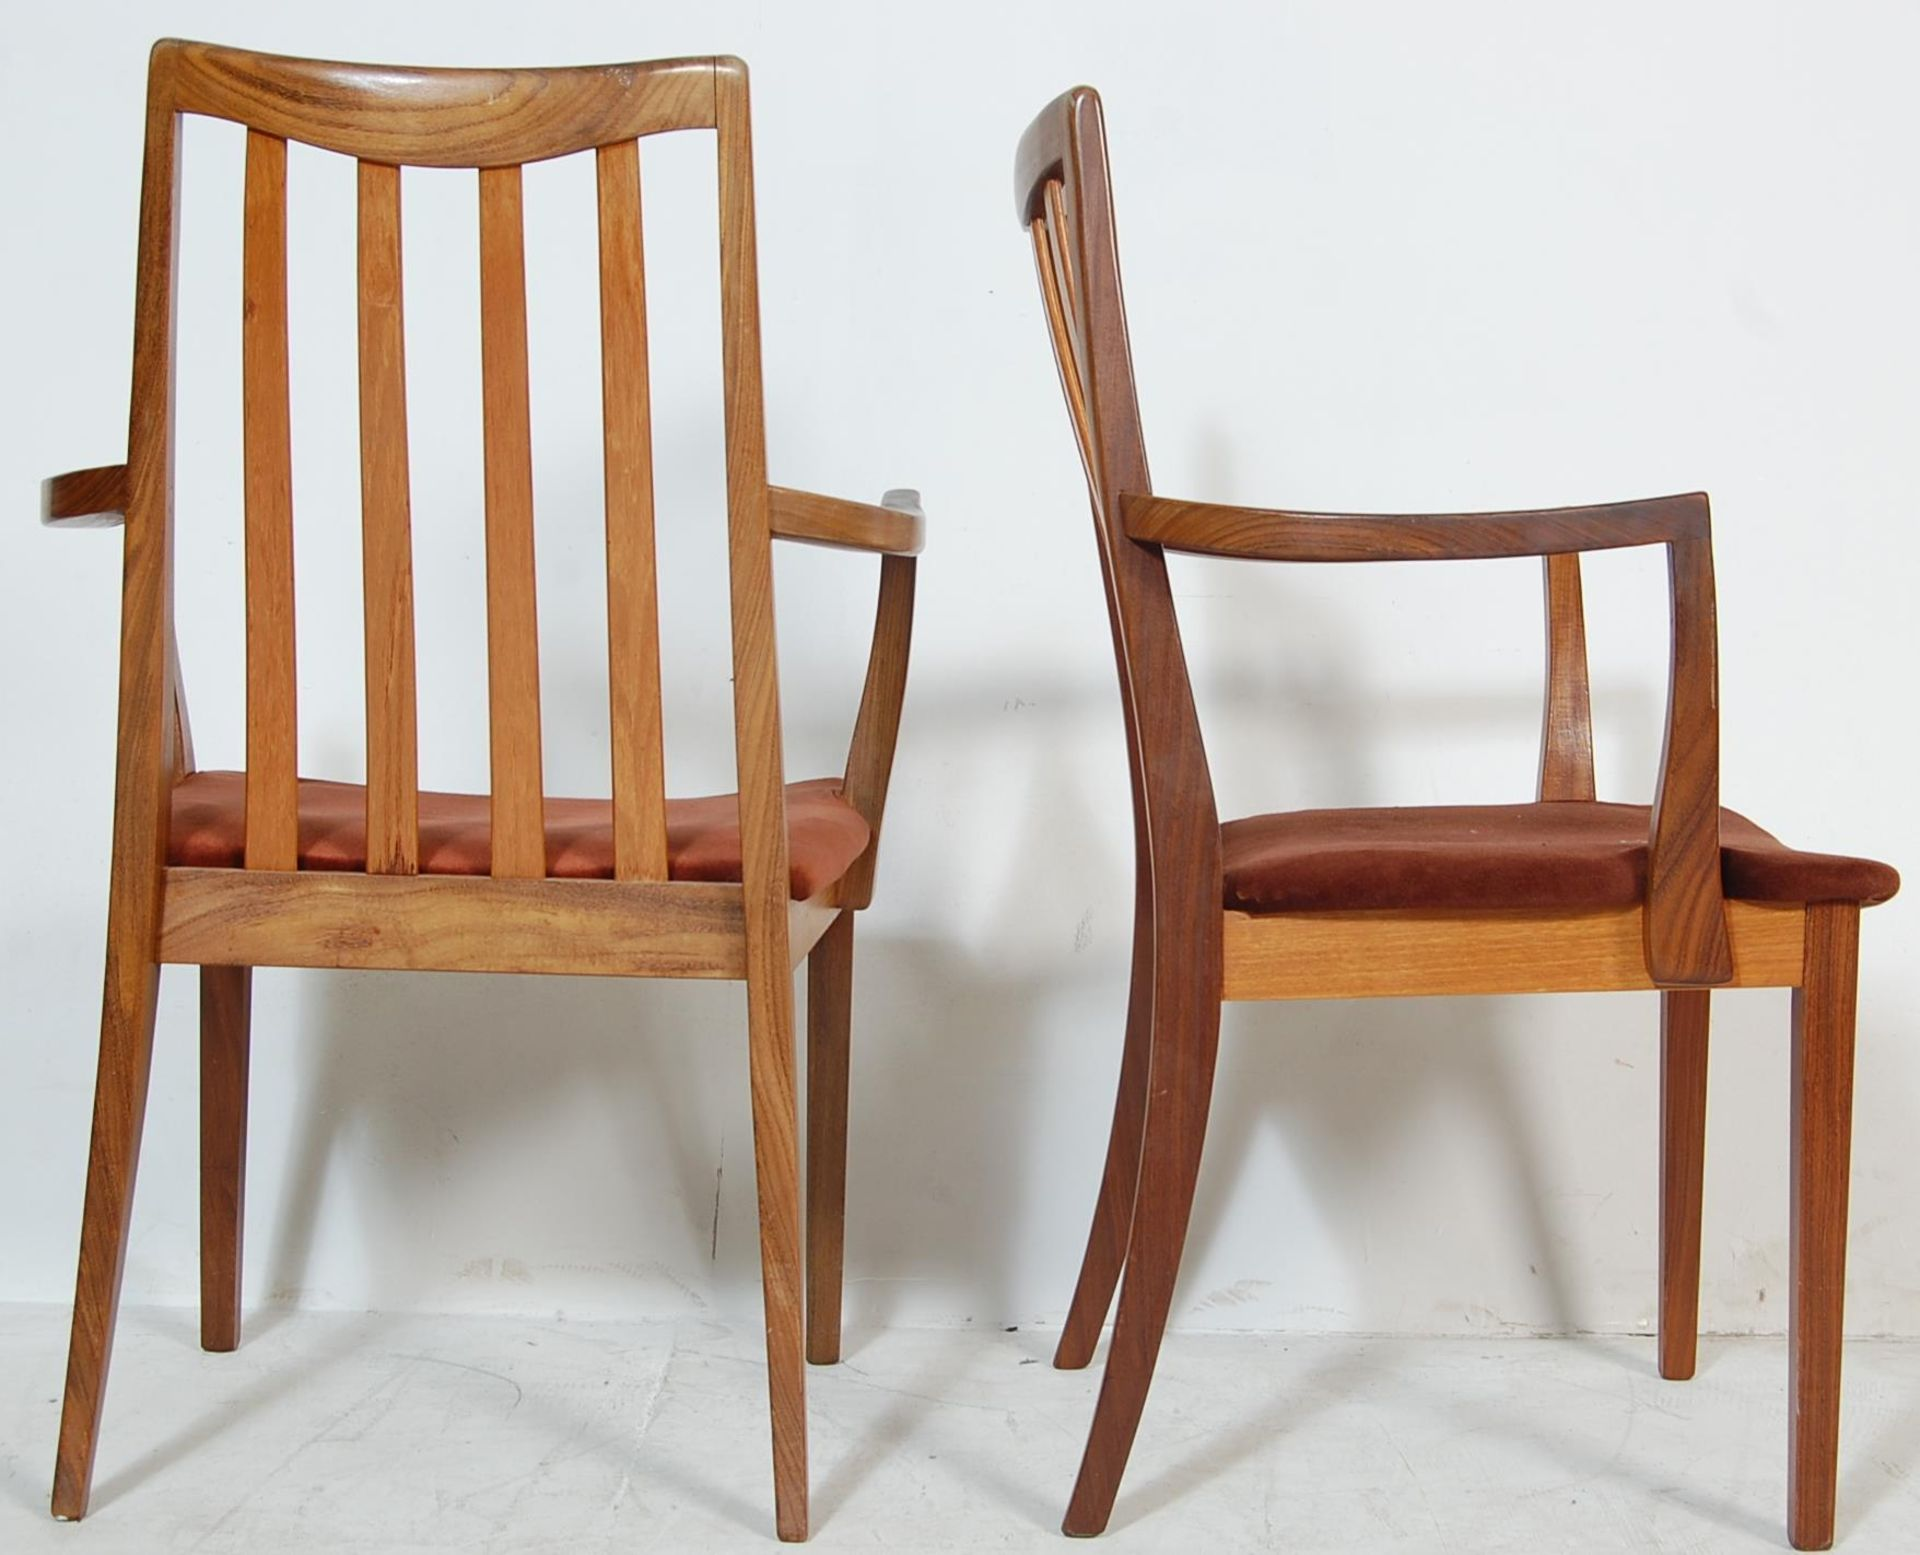 RETRO VINTAGE 1970S GPLAN DINING TABLE AND CHAIRS - Image 11 of 12